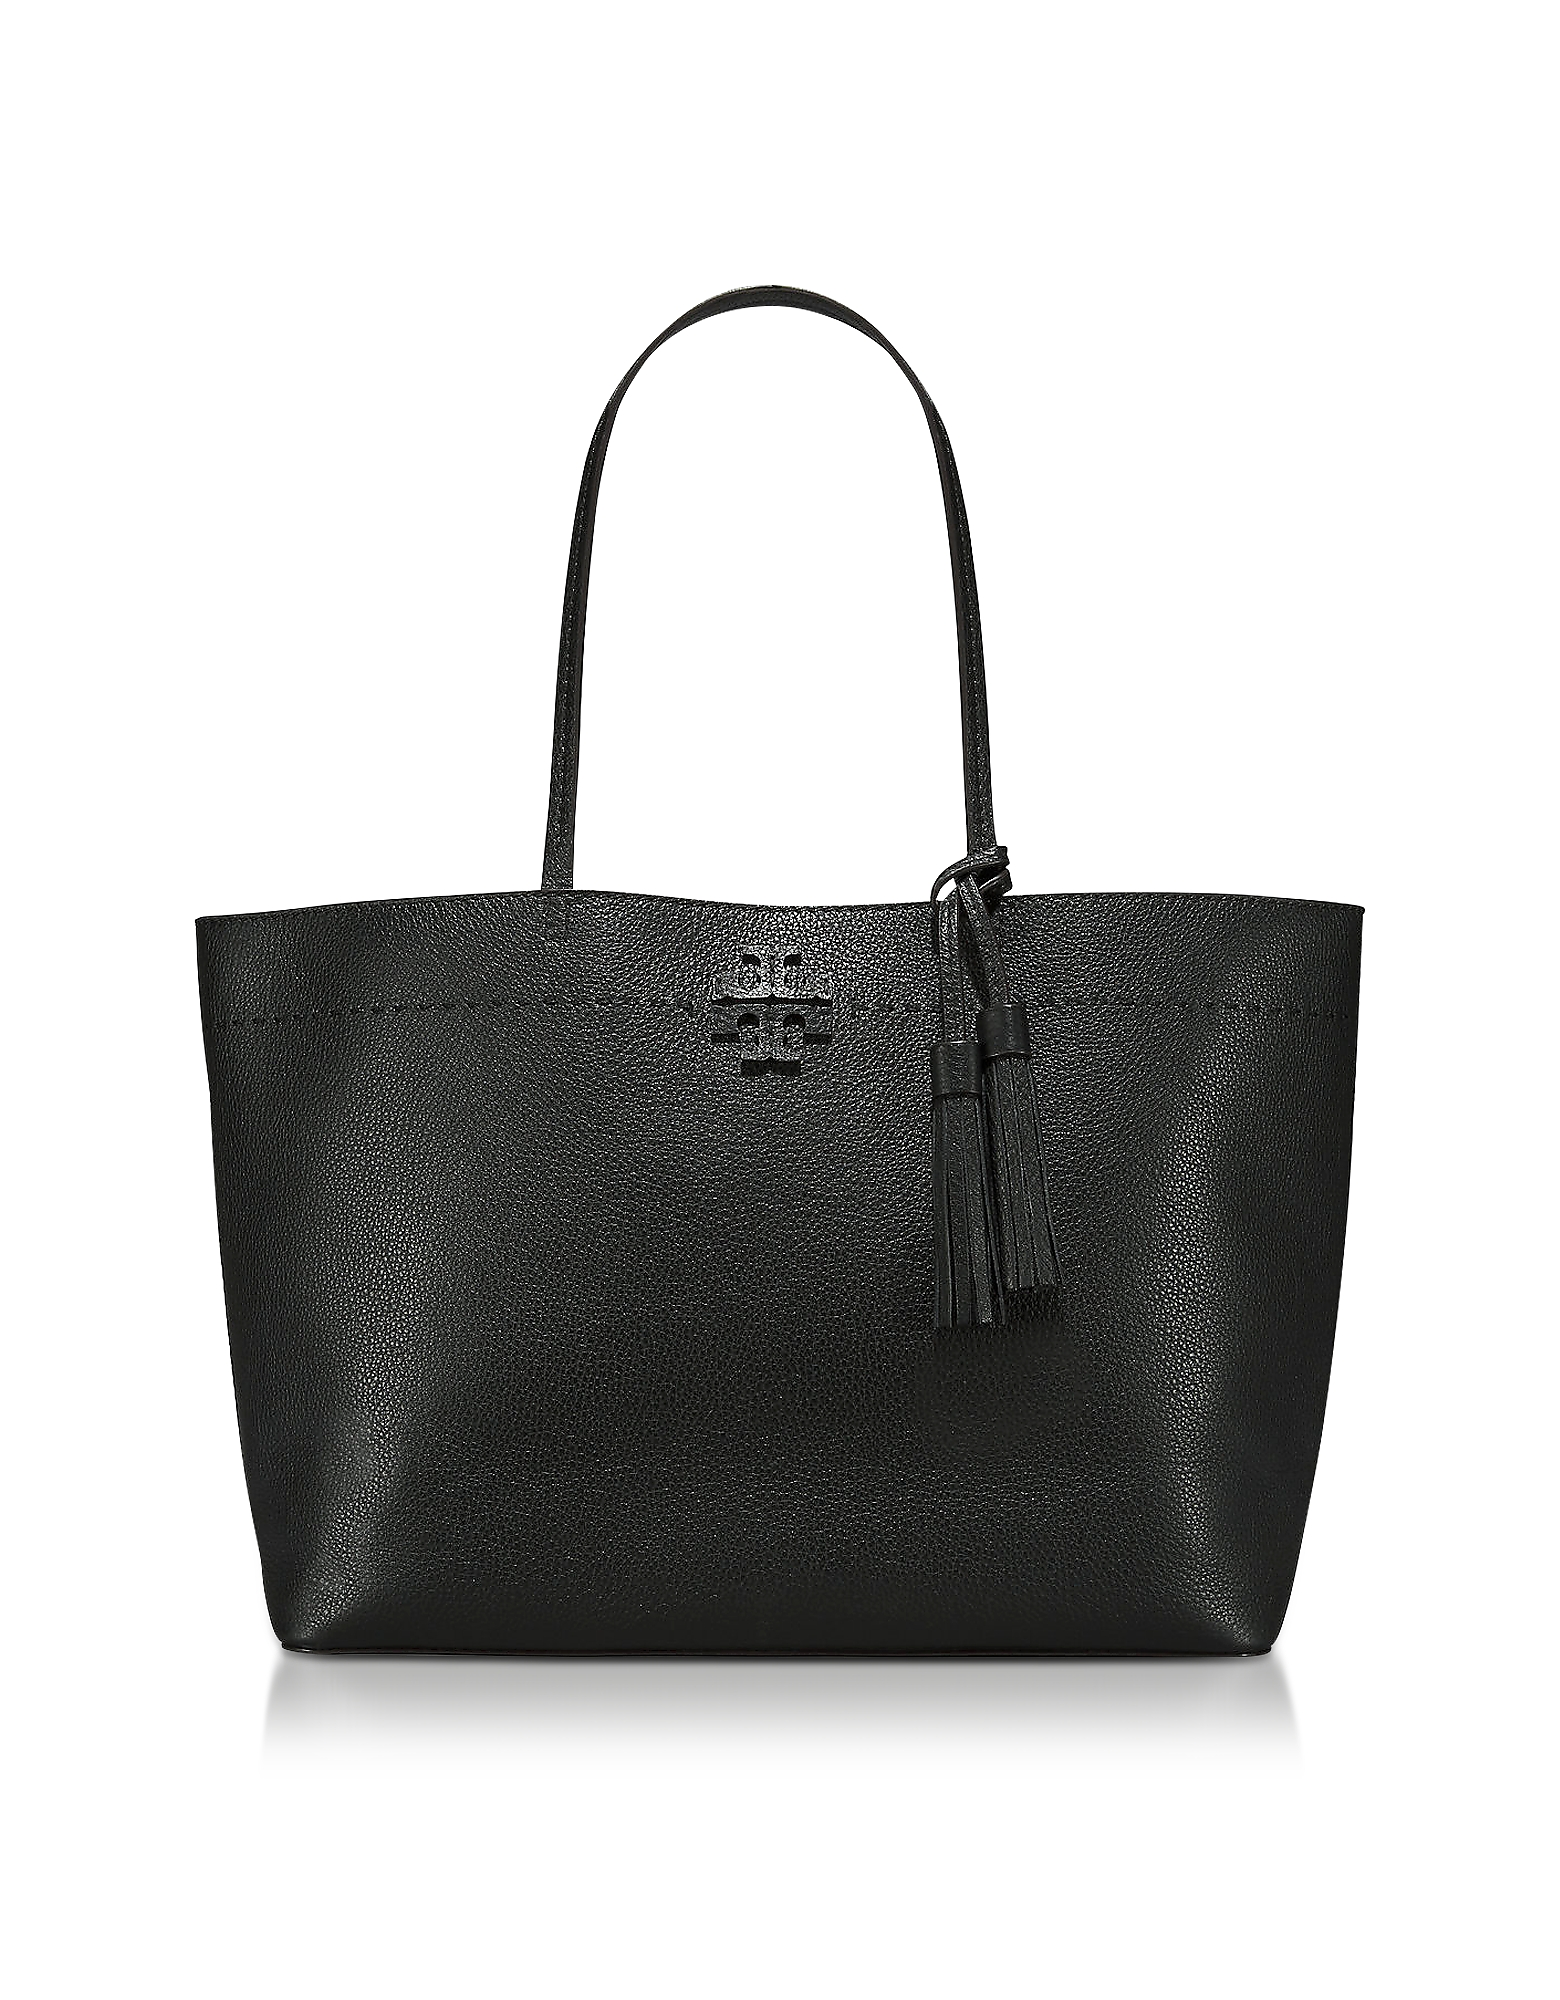 Tory Burch Handbags, McGraw Black Textured Leather Tote Bag